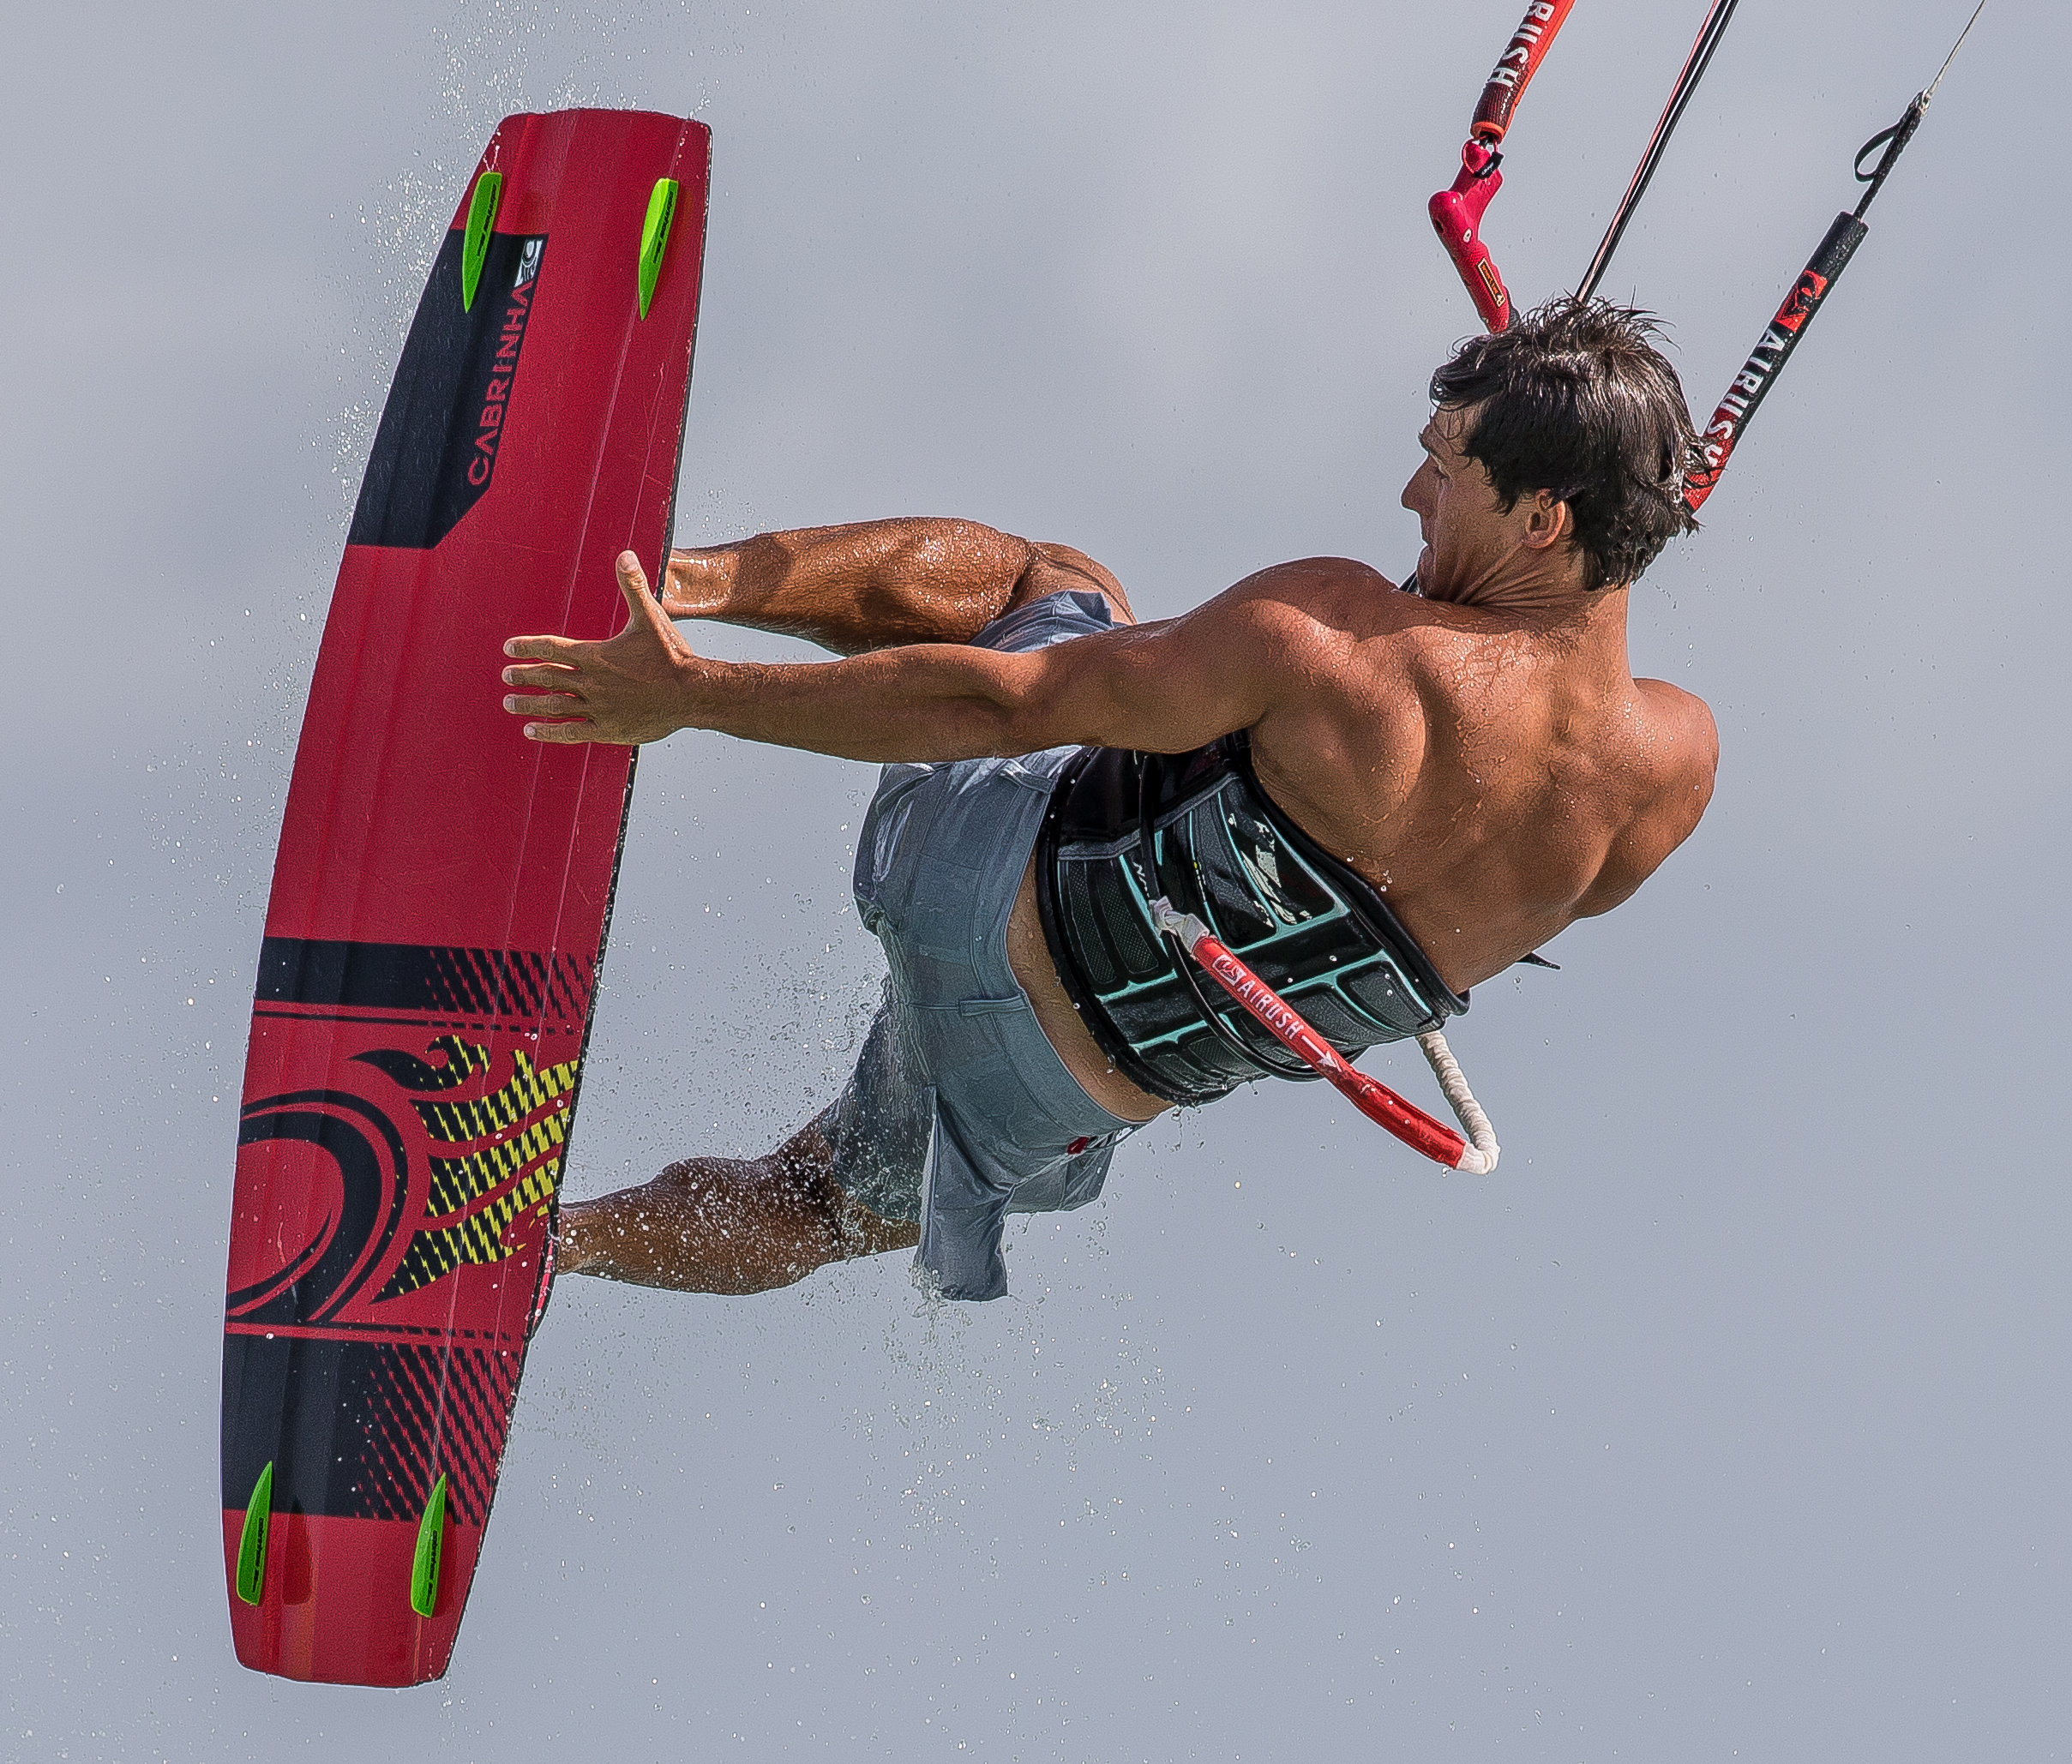 Aruba Kitesurfing Scott Smit Photo